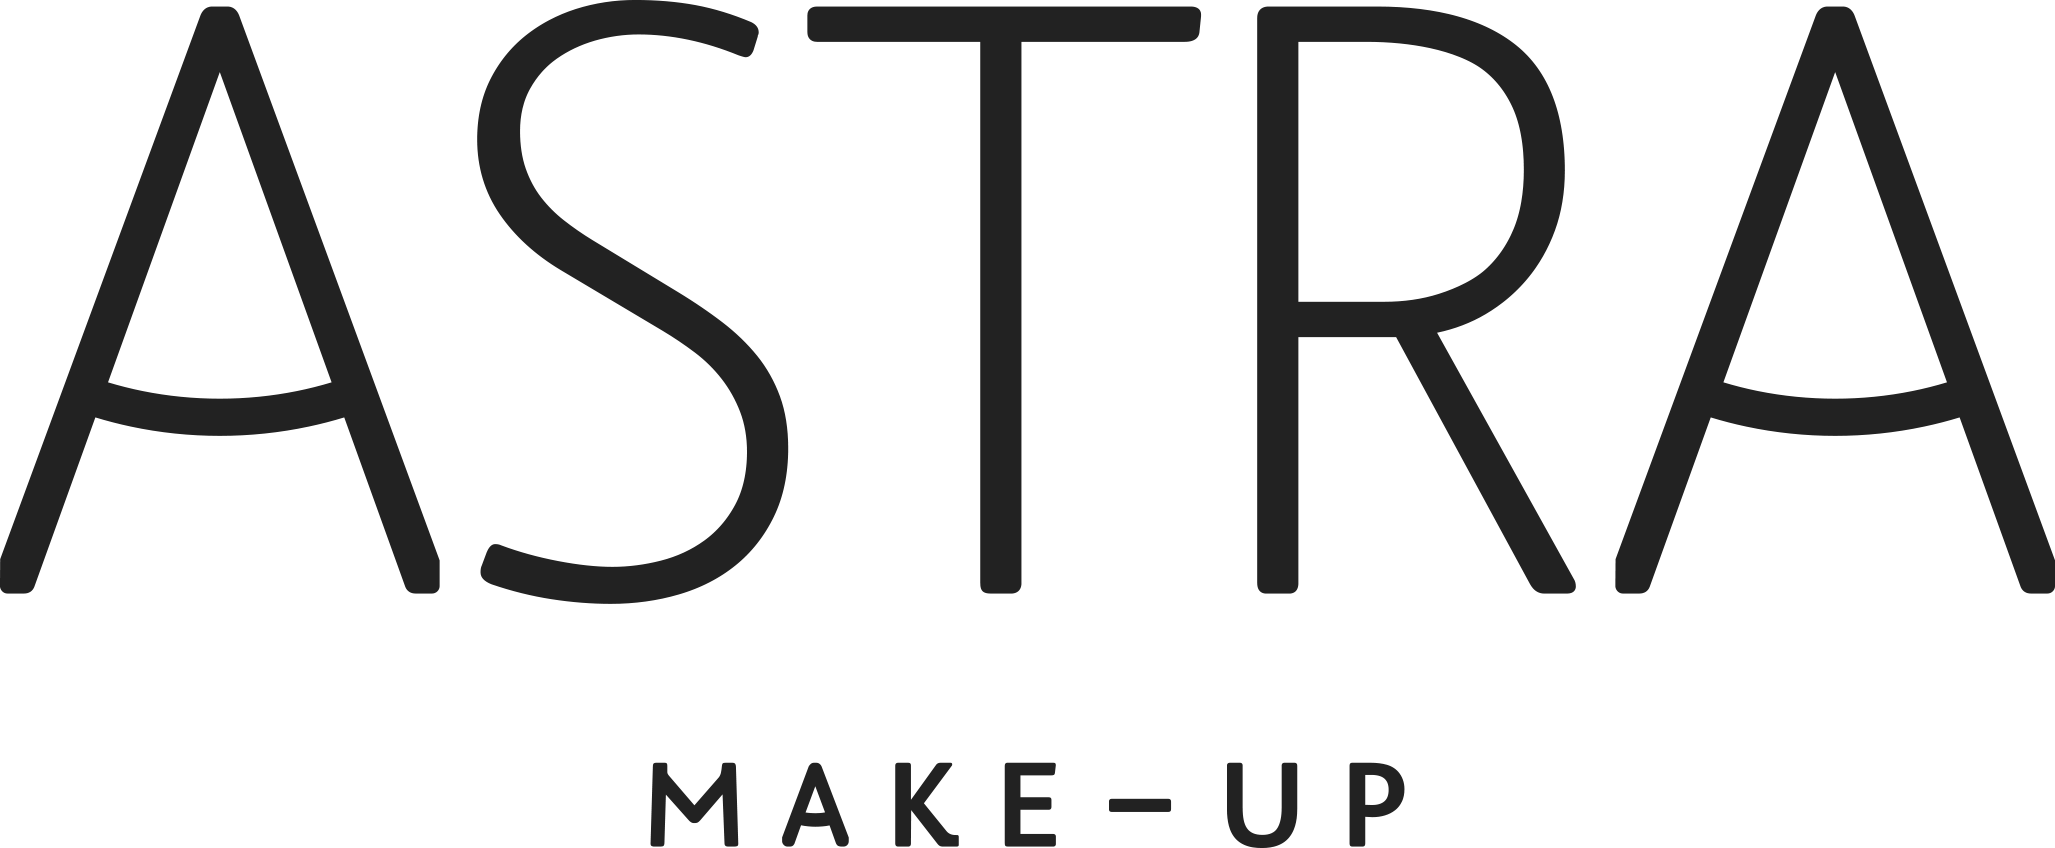 Astra Make-Up